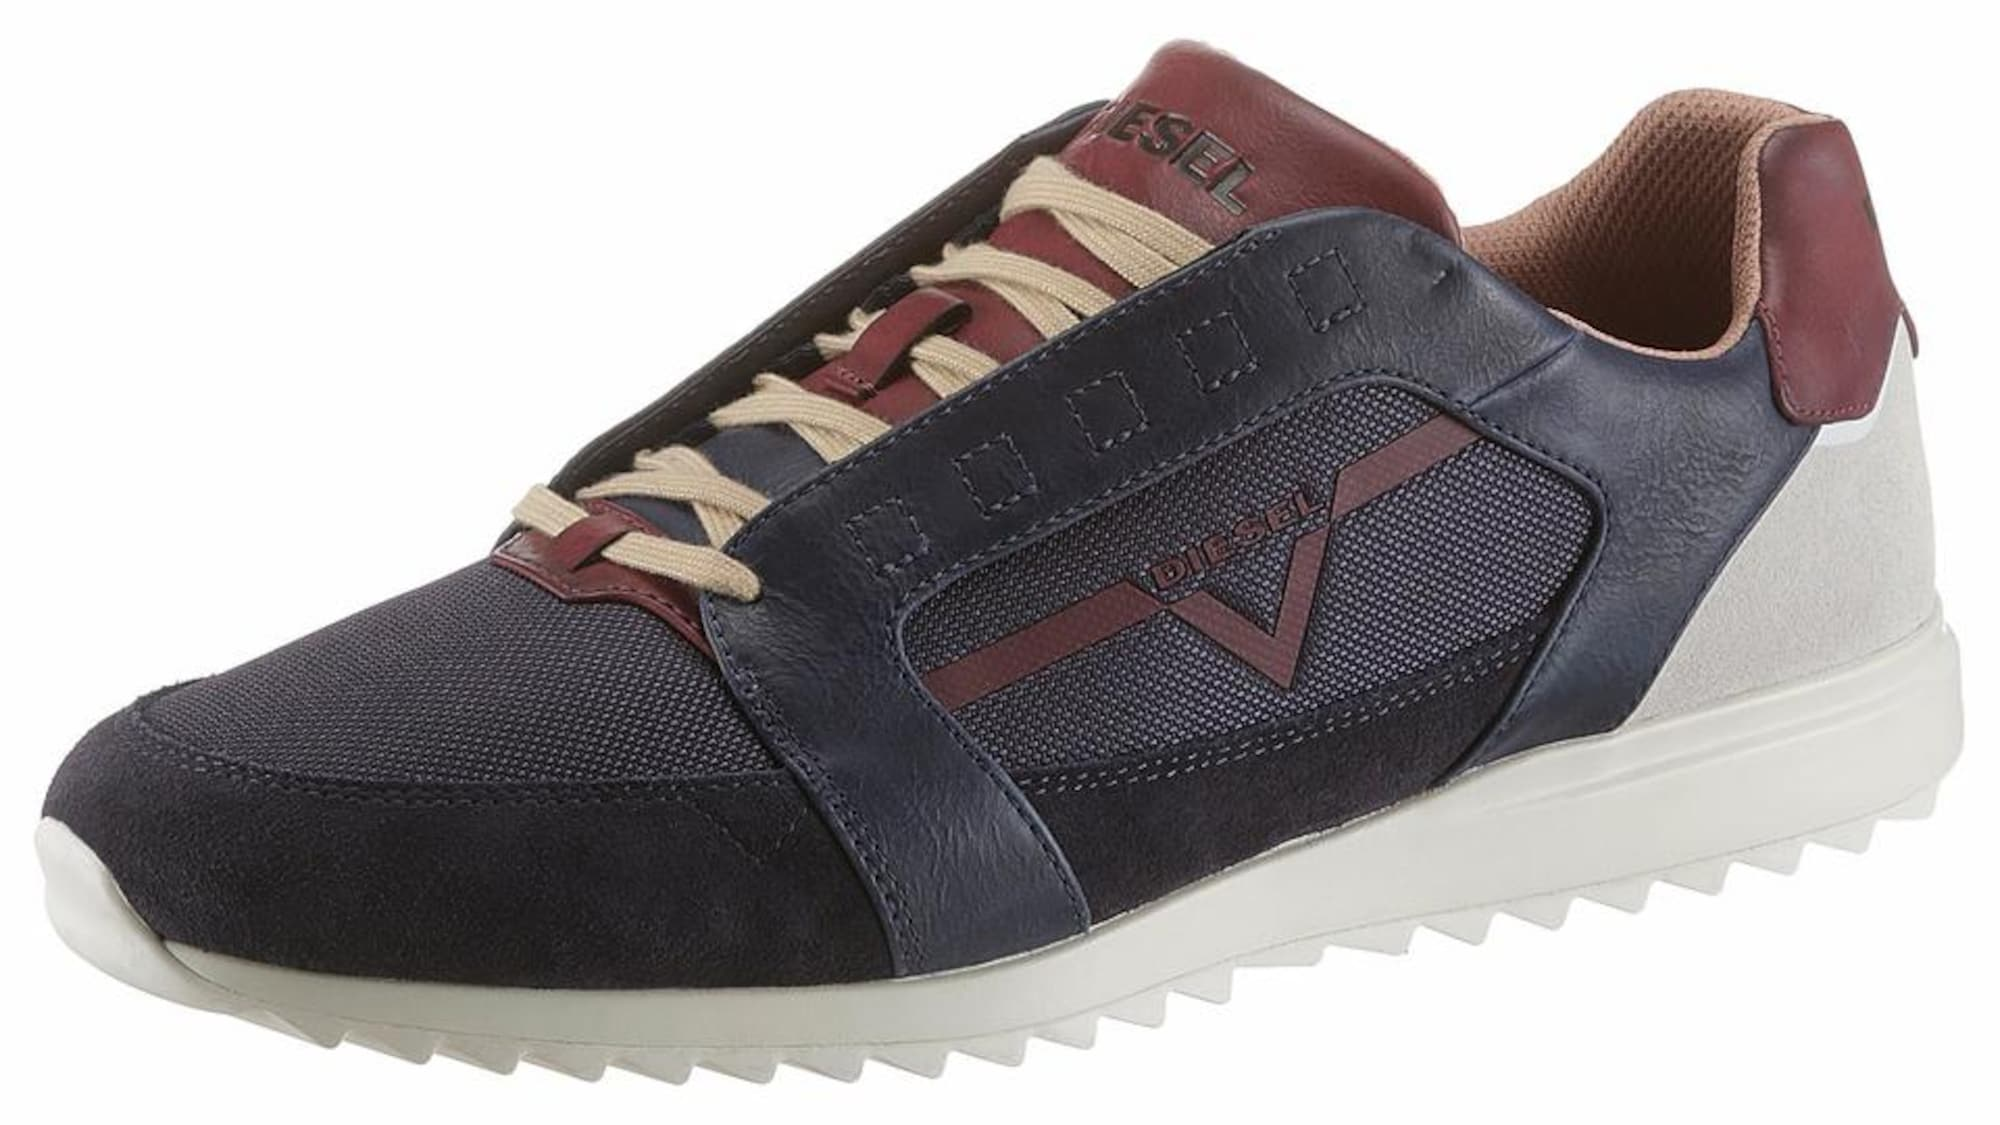 DIESEL Heren Sneakers laag S-Fleett navy donkerrood